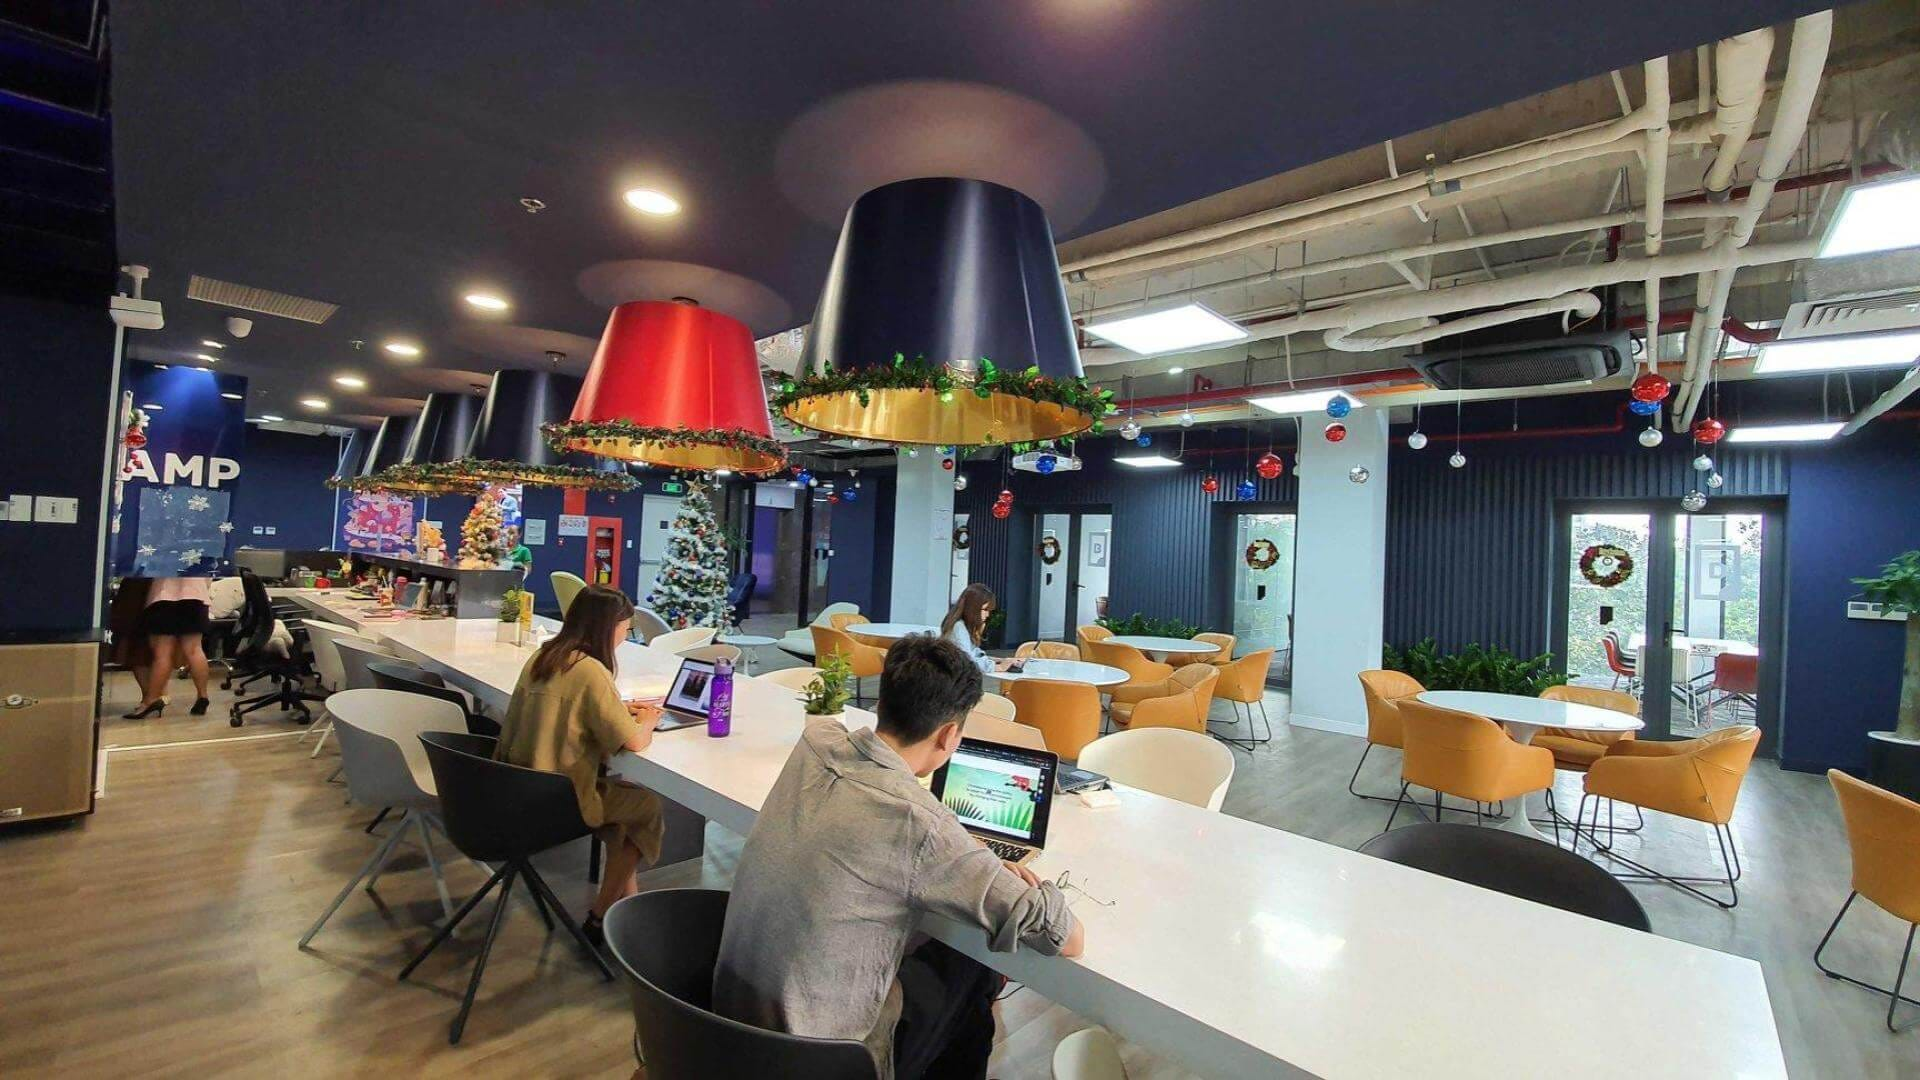 Dreamplex coworking space in Ho Chi Minh City